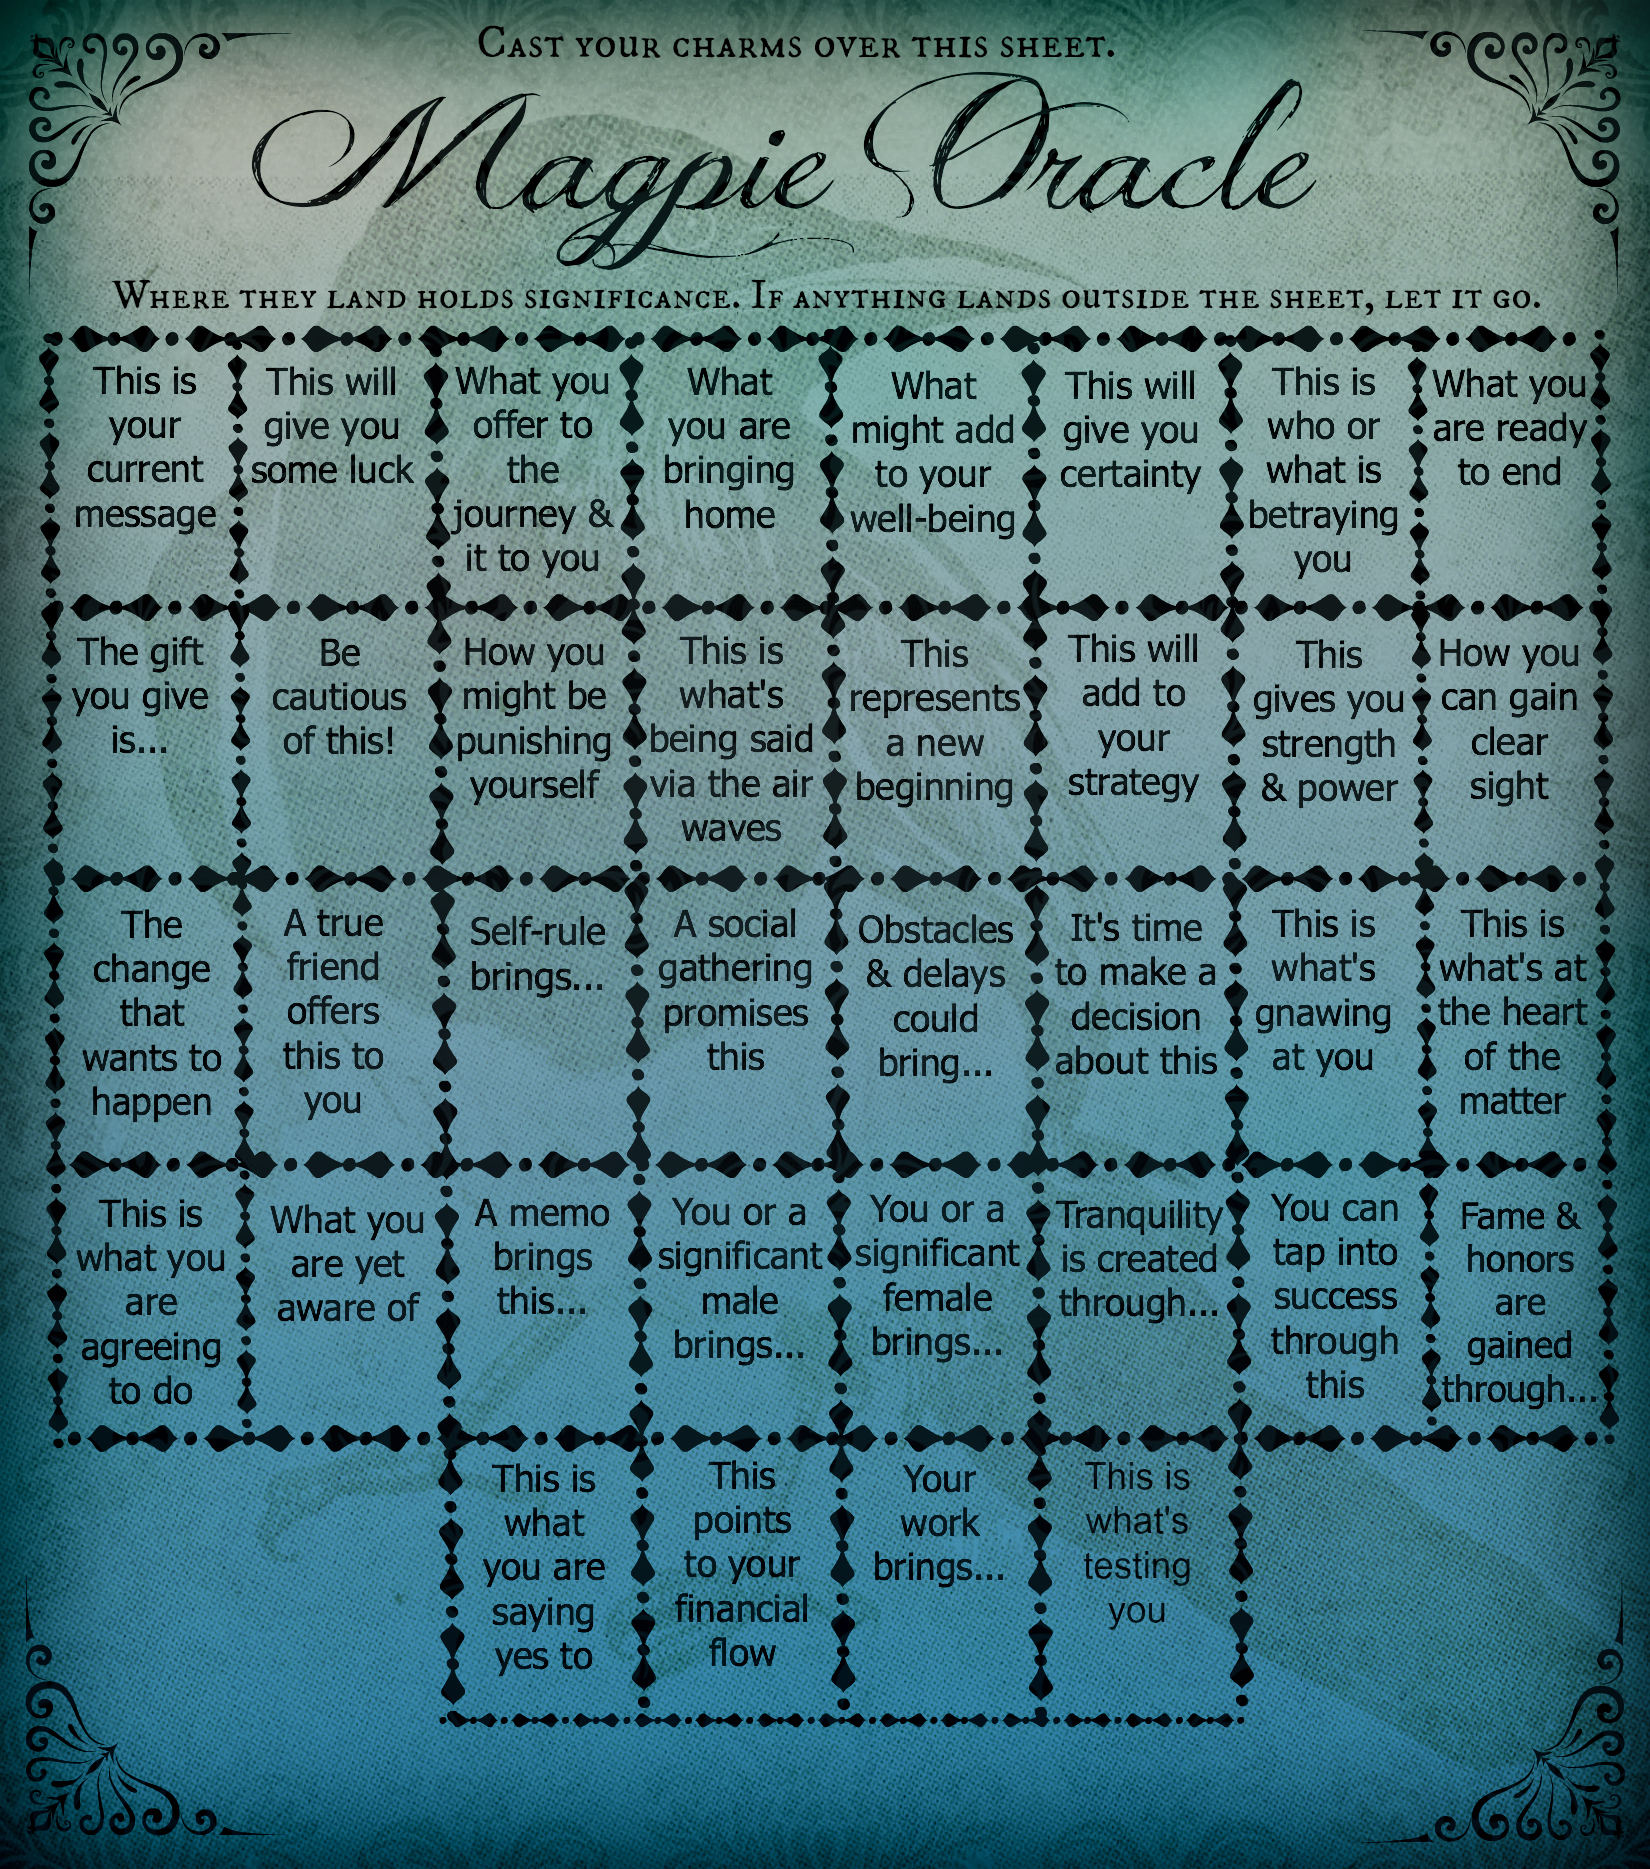 magpie oracle Magpie-Oracle-Casting-Sheet